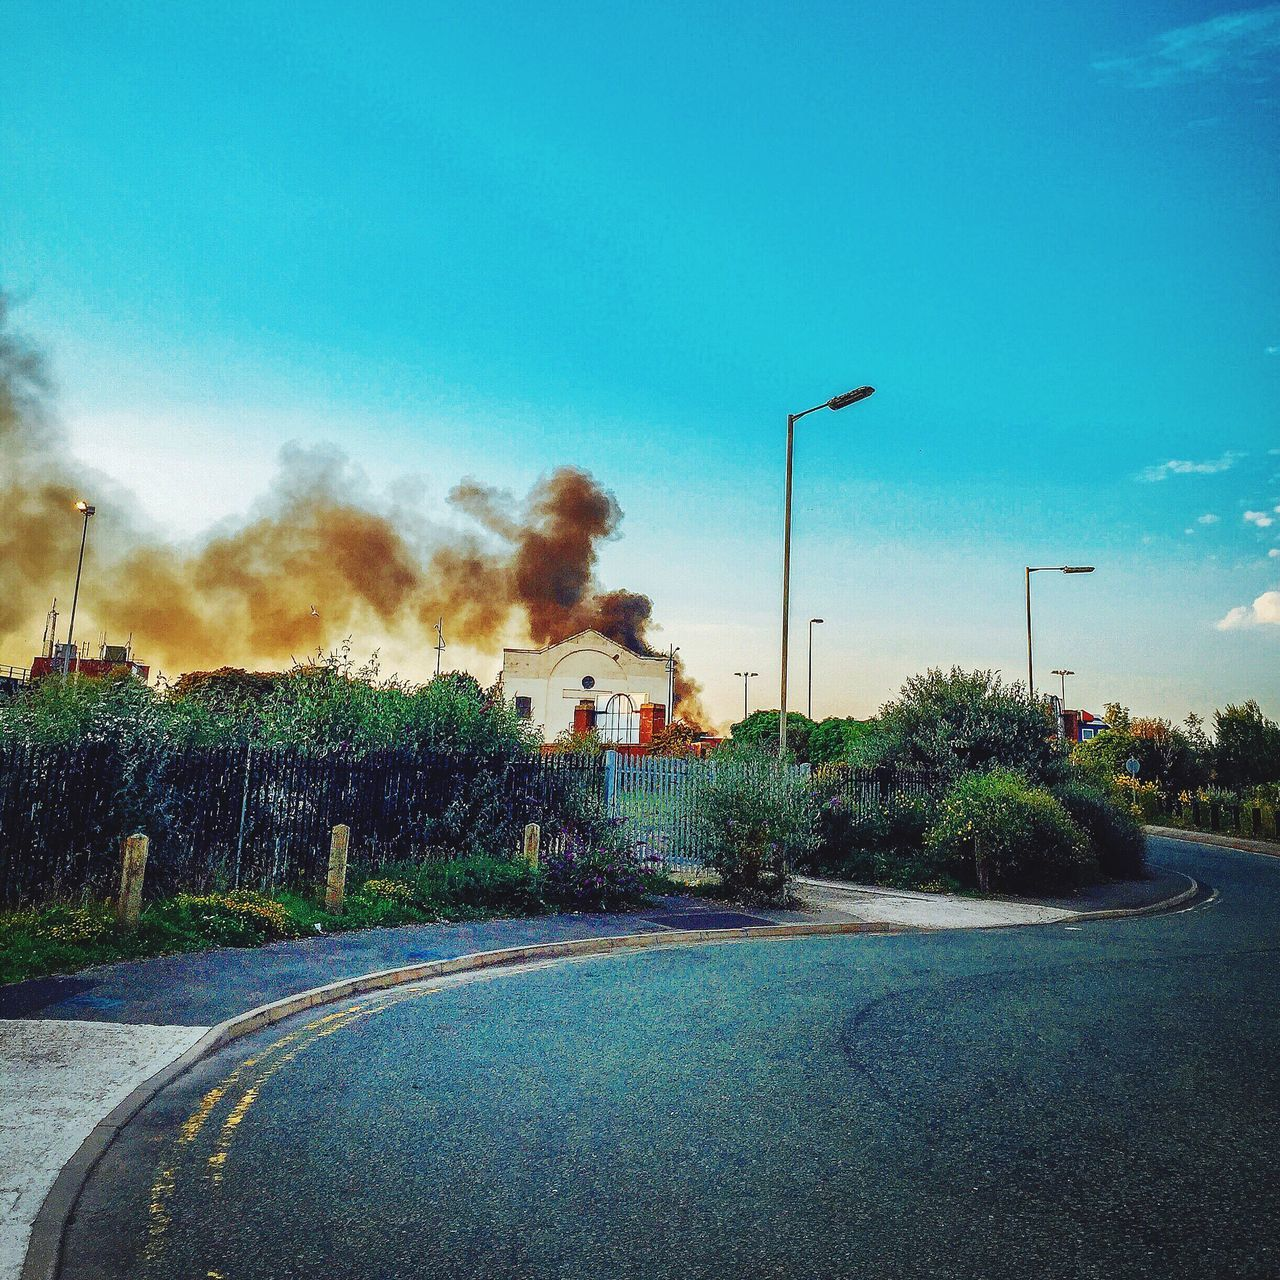 smoke - physical structure, built structure, tree, sky, no people, architecture, day, outdoors, road, building exterior, smoke stack, blue